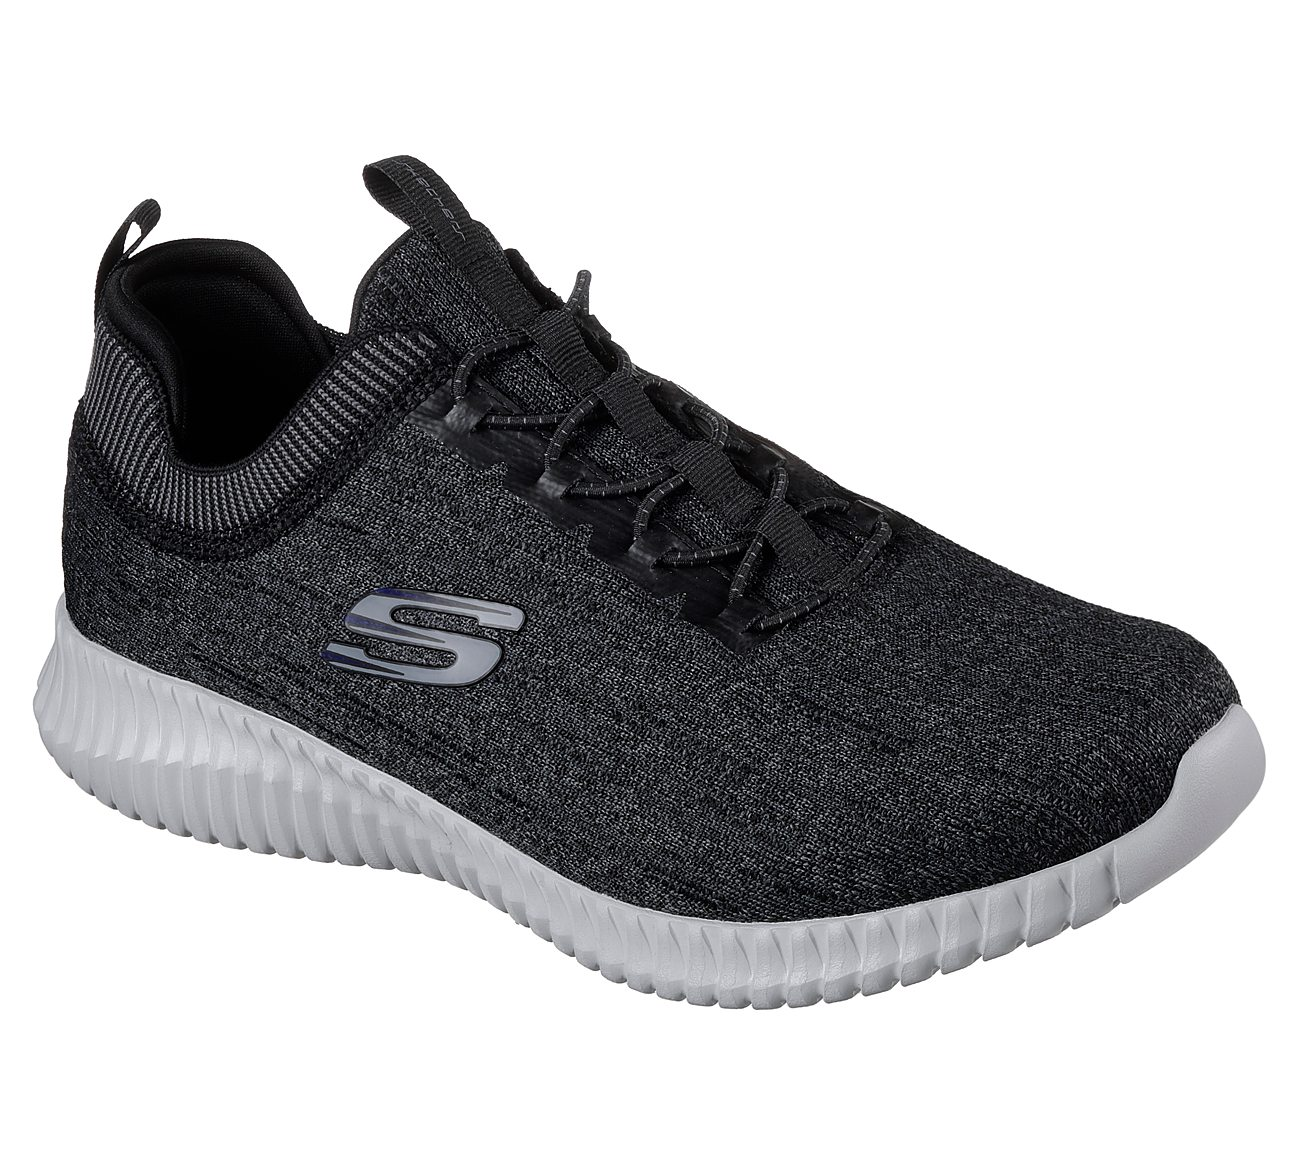 SKECHERS Elite Flex - Hartnell Sport Shoes